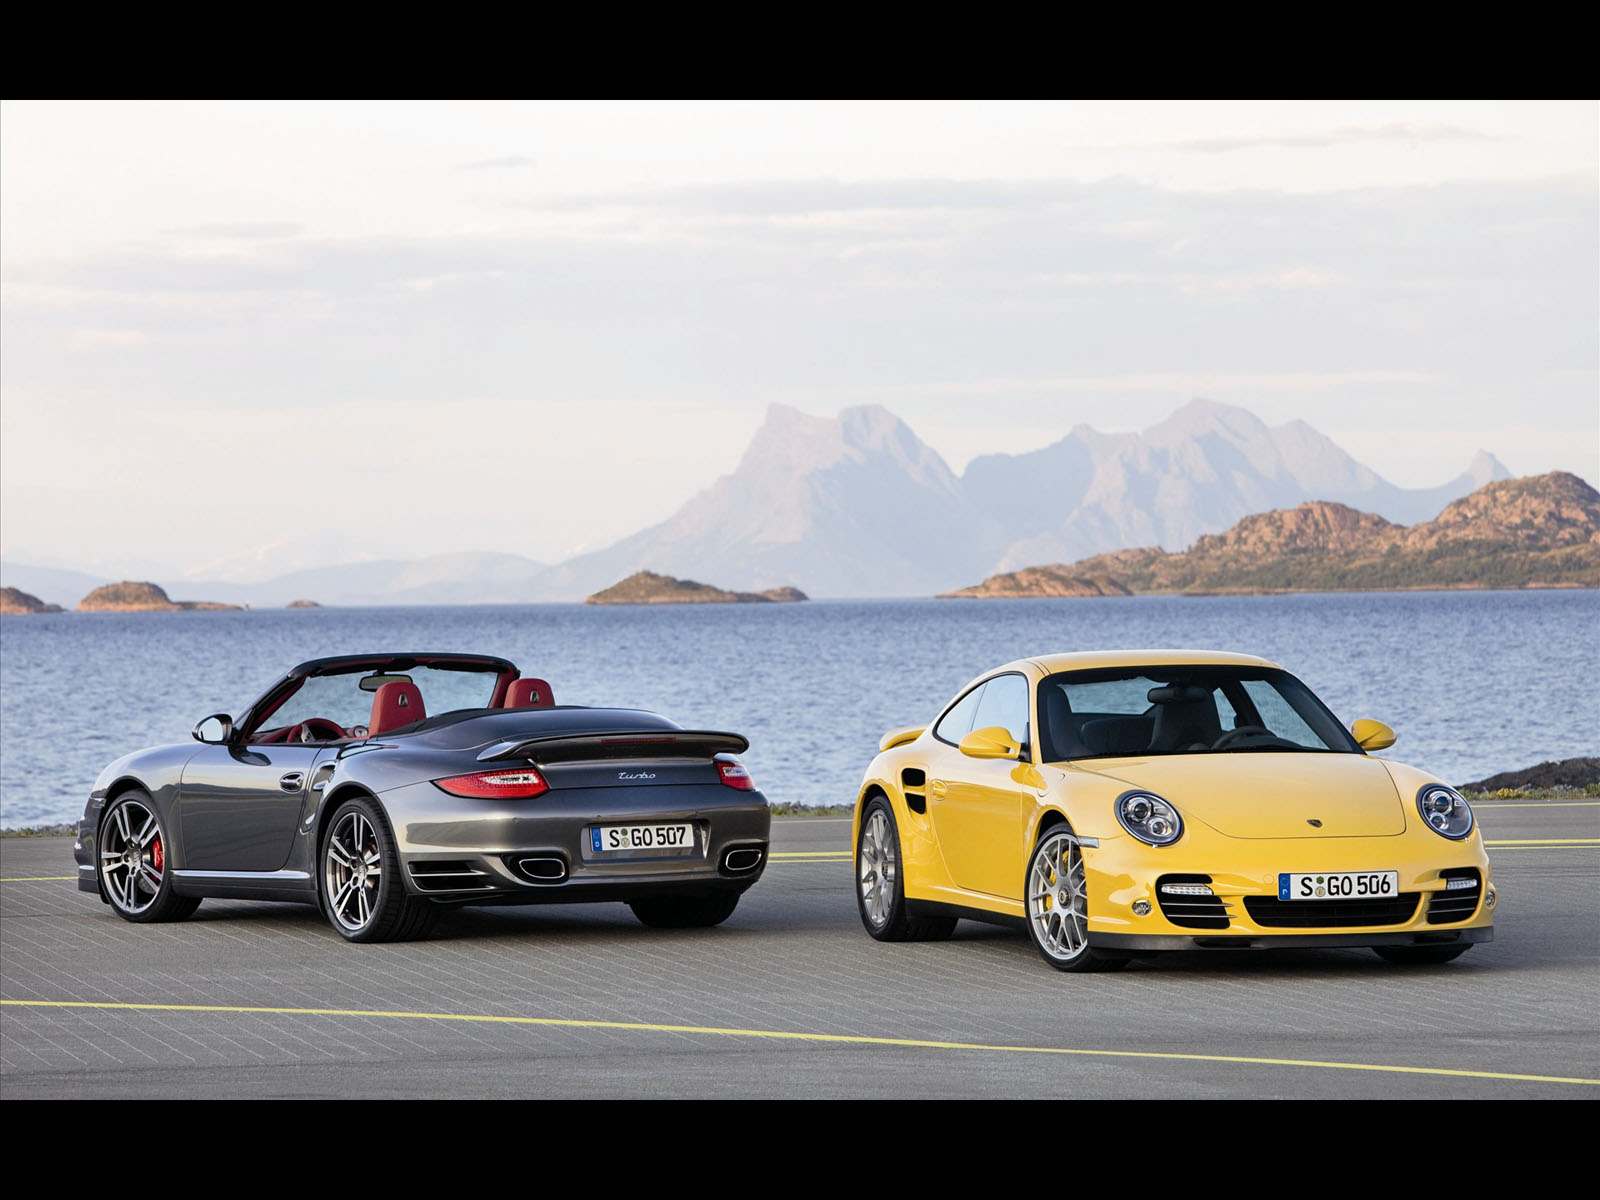 3d Wallpaper Of Cars And Bikes Wallpapers Porsche 911 Turbo Car Wallpapers